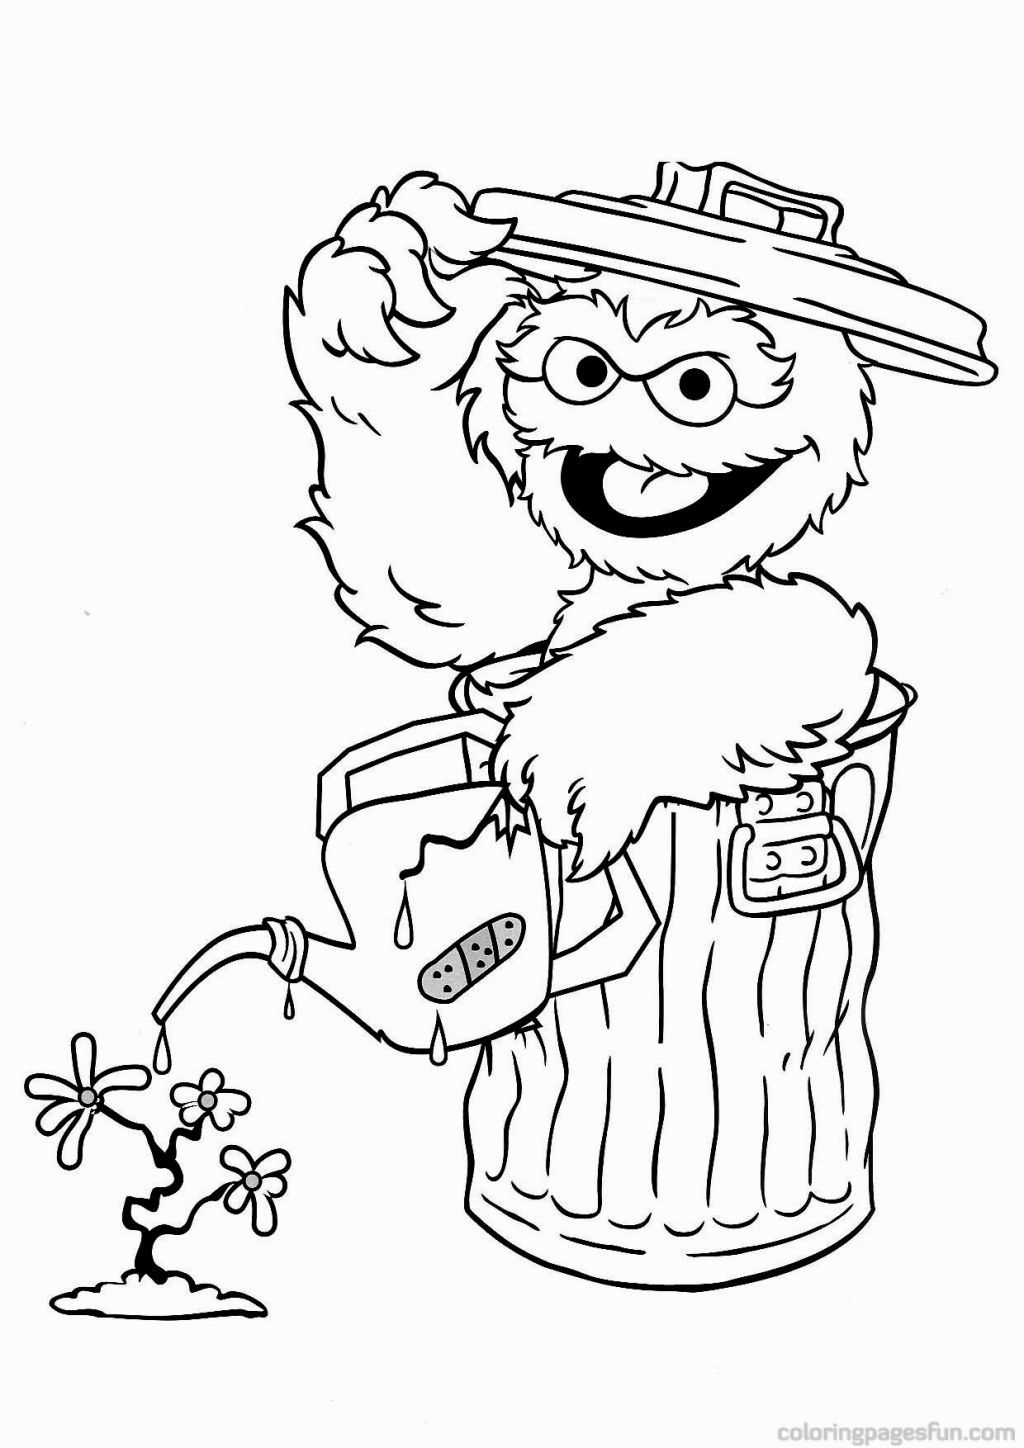 Sesame Street Coloring Pages | Coloring Pages | Pinterest | Coloring - Free Printable Sesame Street Coloring Pages